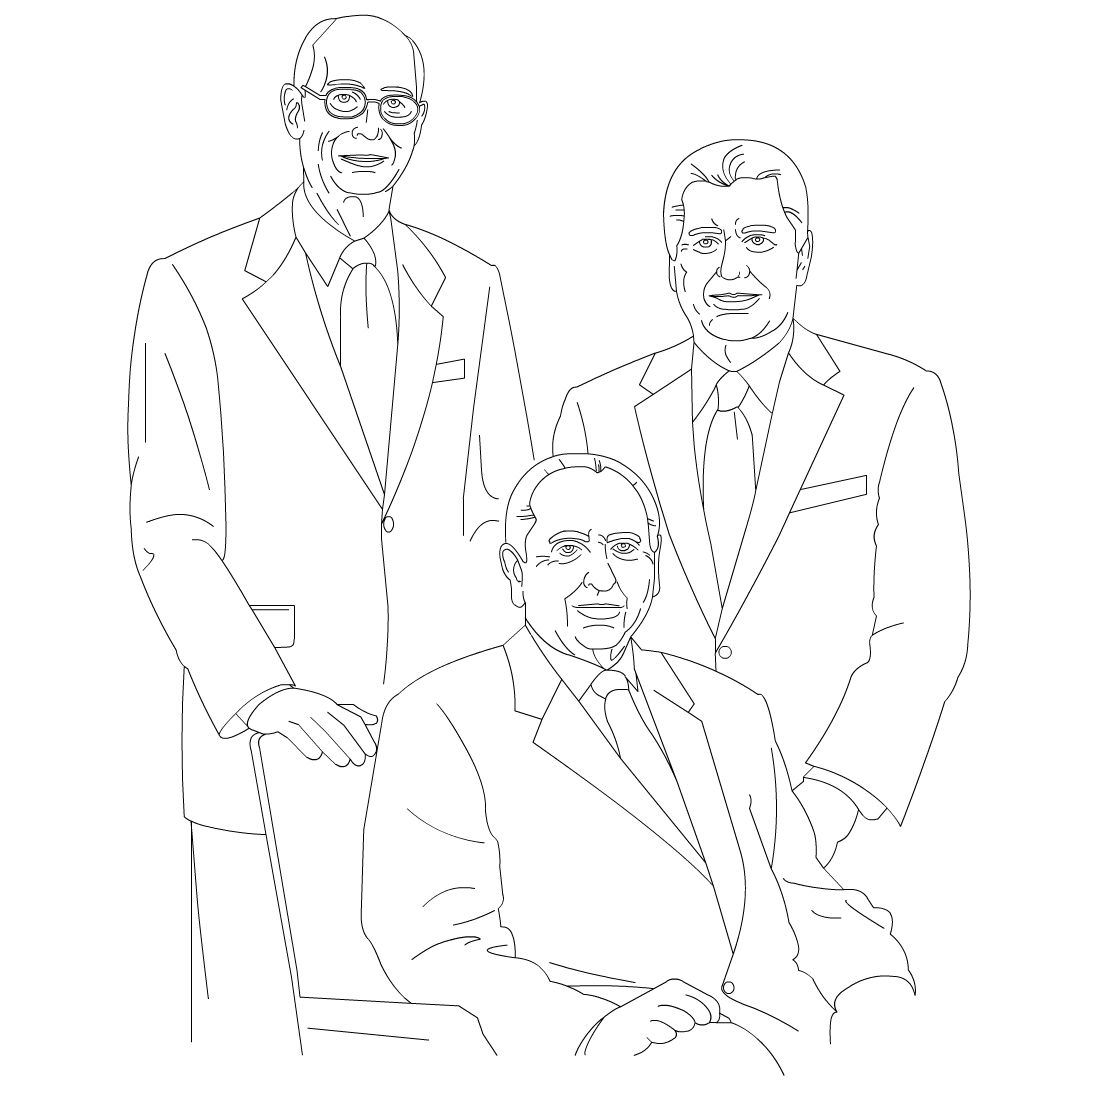 medium resolution of free lds clipart to color for primary children first presidency monson eyring uchtdorf